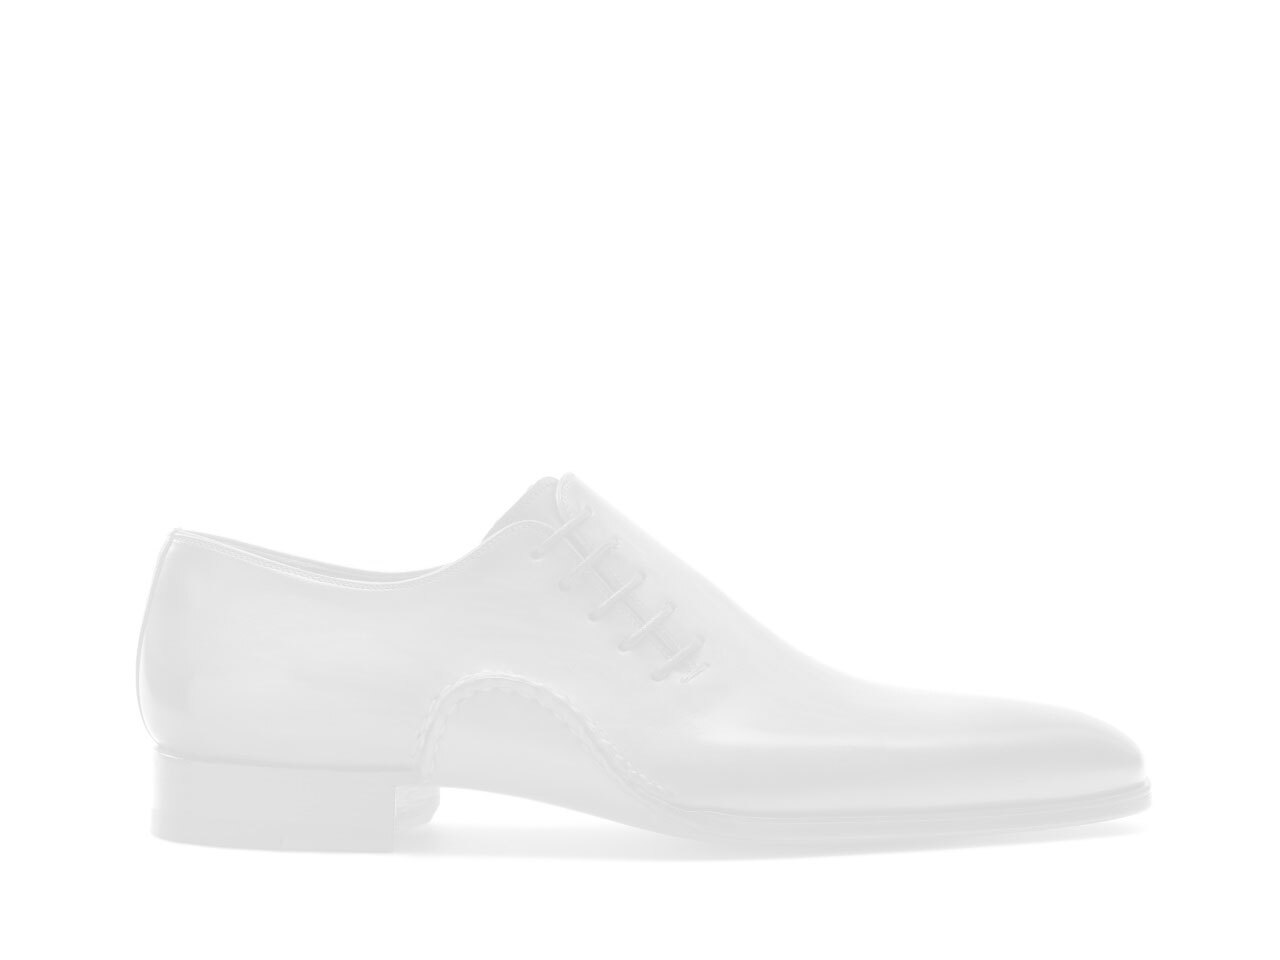 Sole of the Magnanni Castillo White and Navy Men's Sneakers